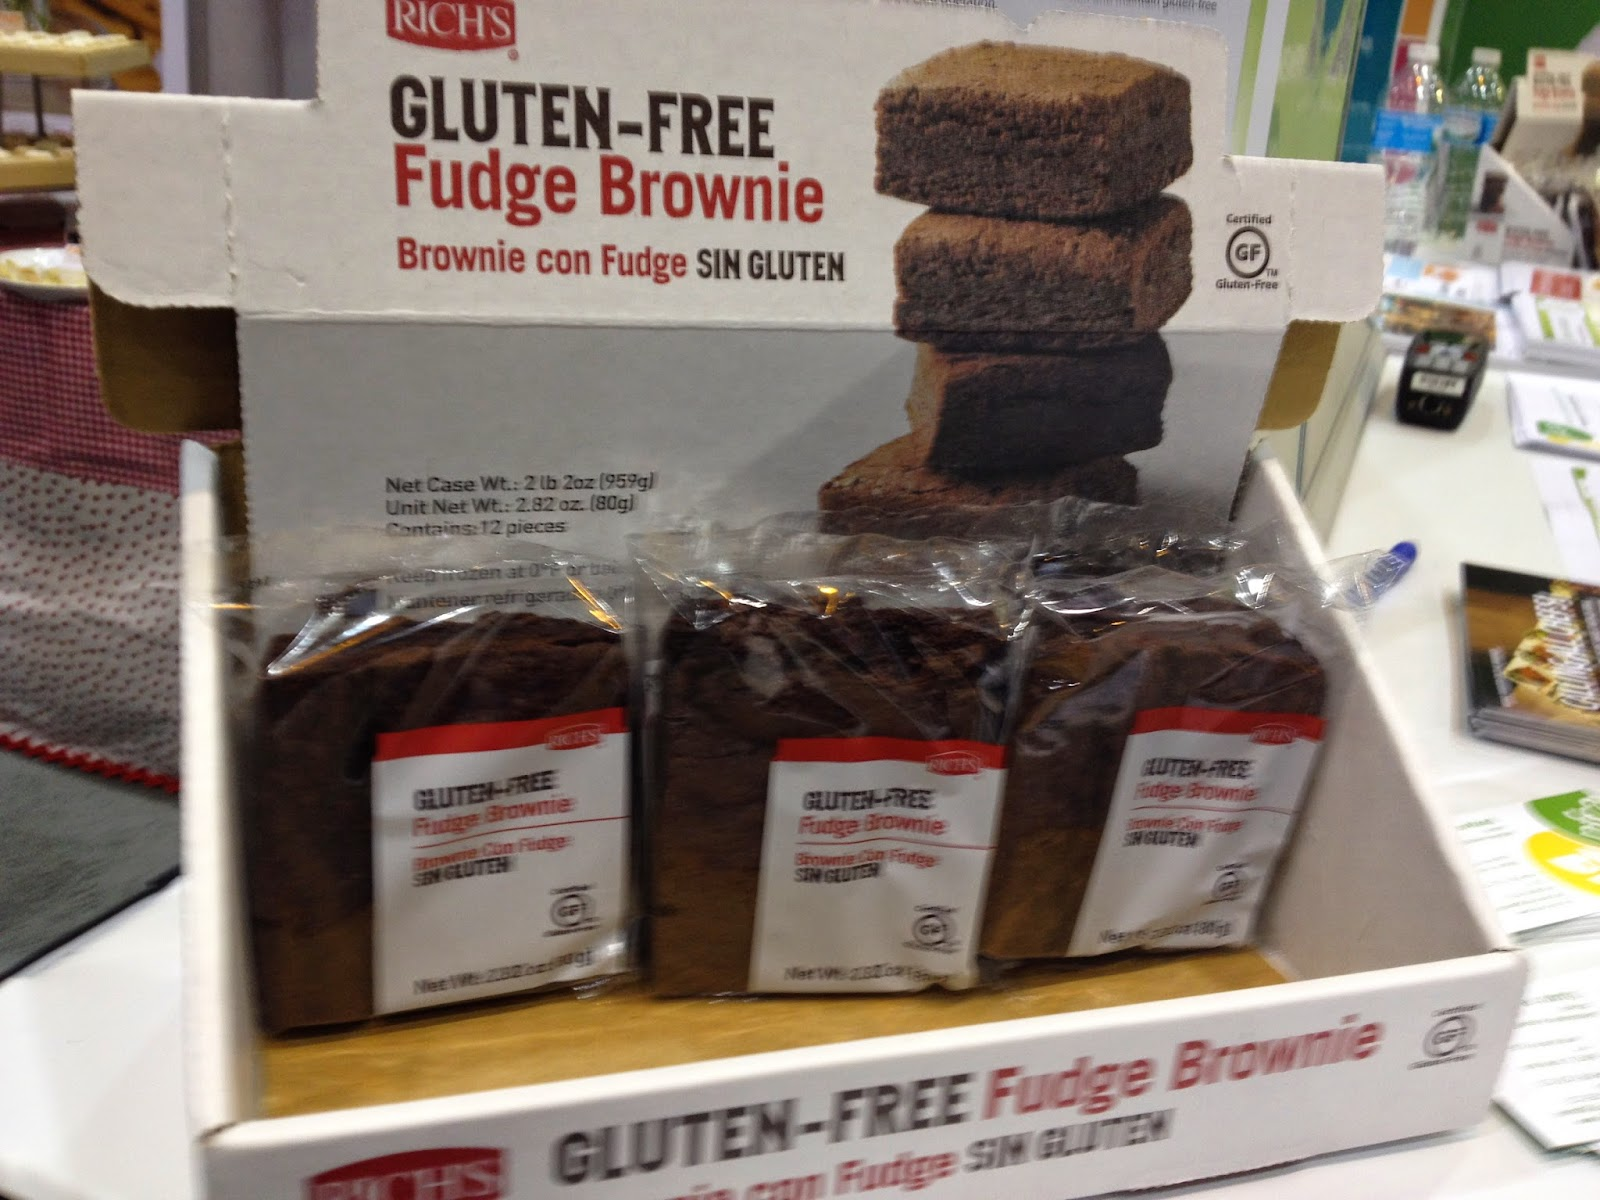 Rich's Gluten- Free Fudge Brownie